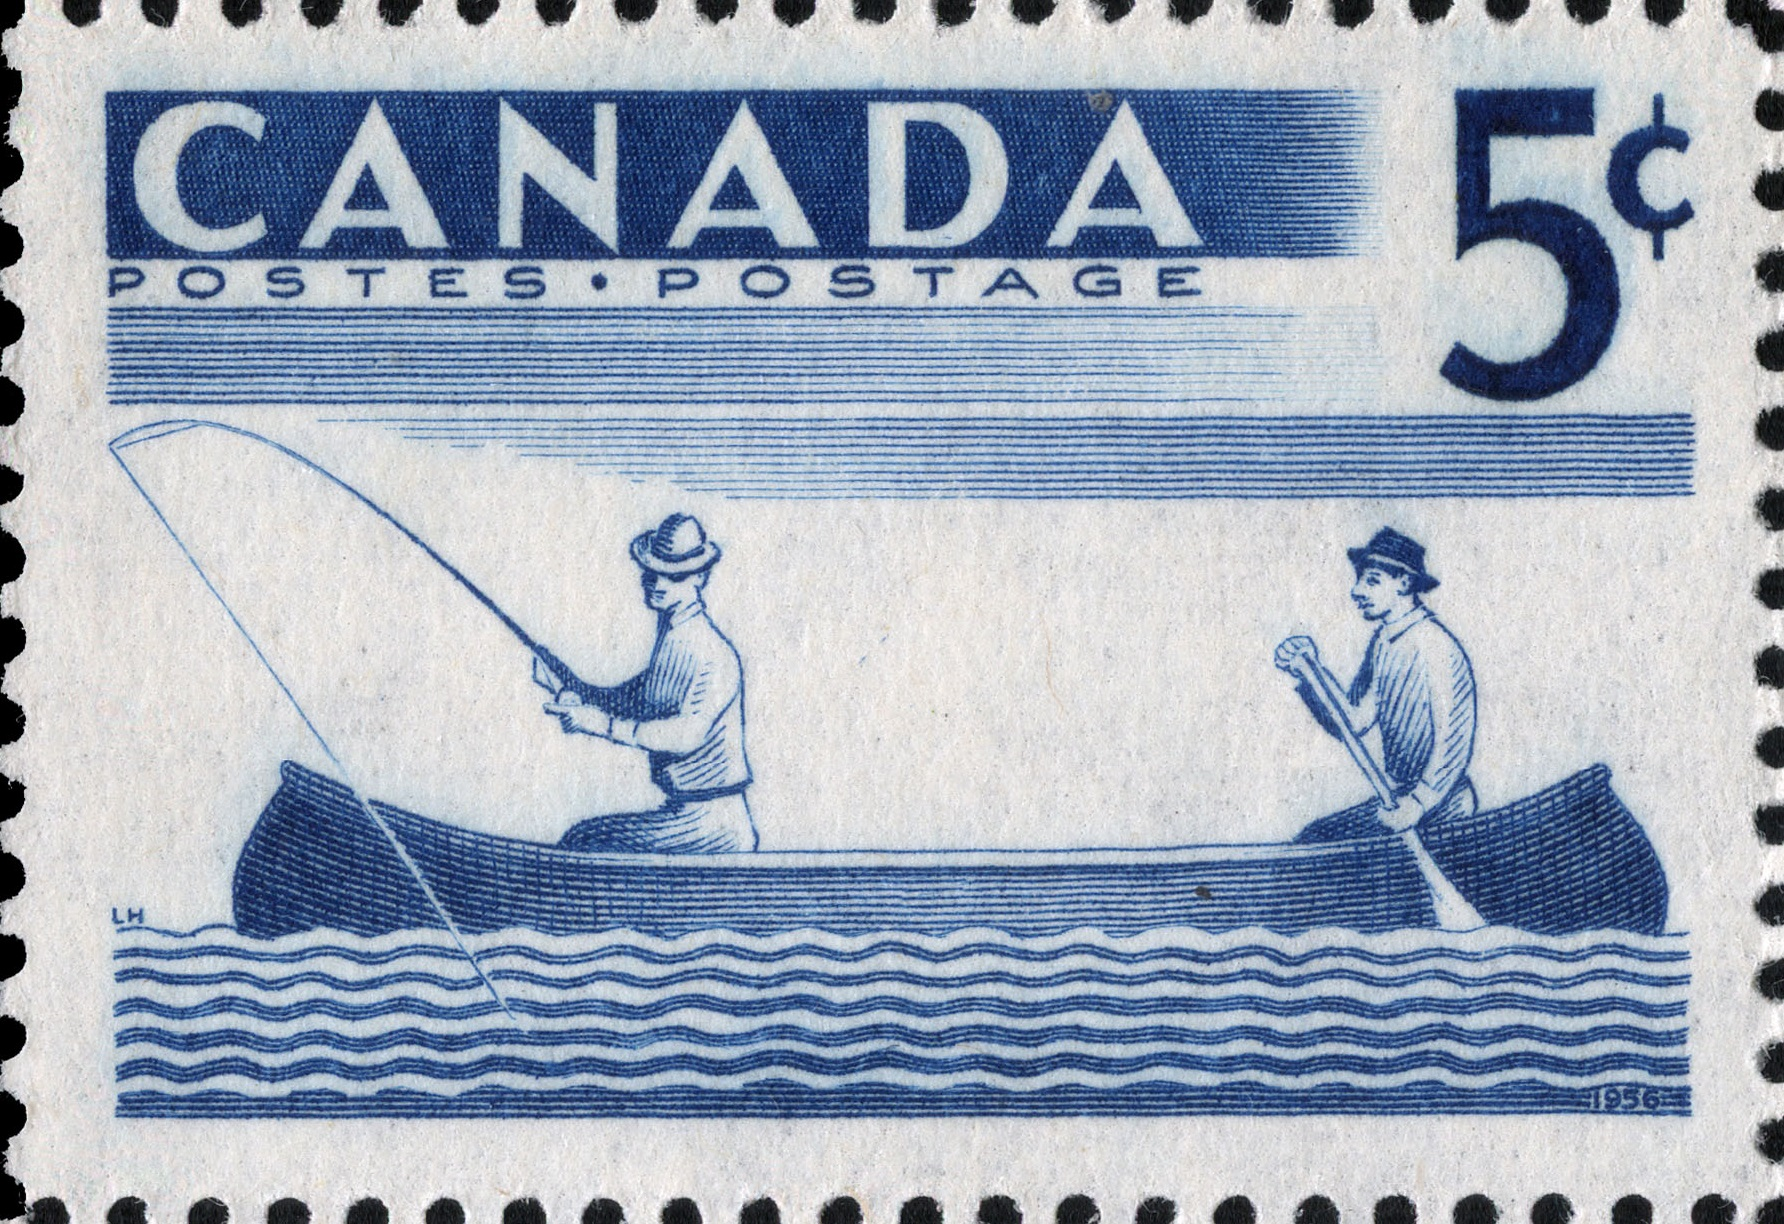 Fishing Canada Postage Stamp